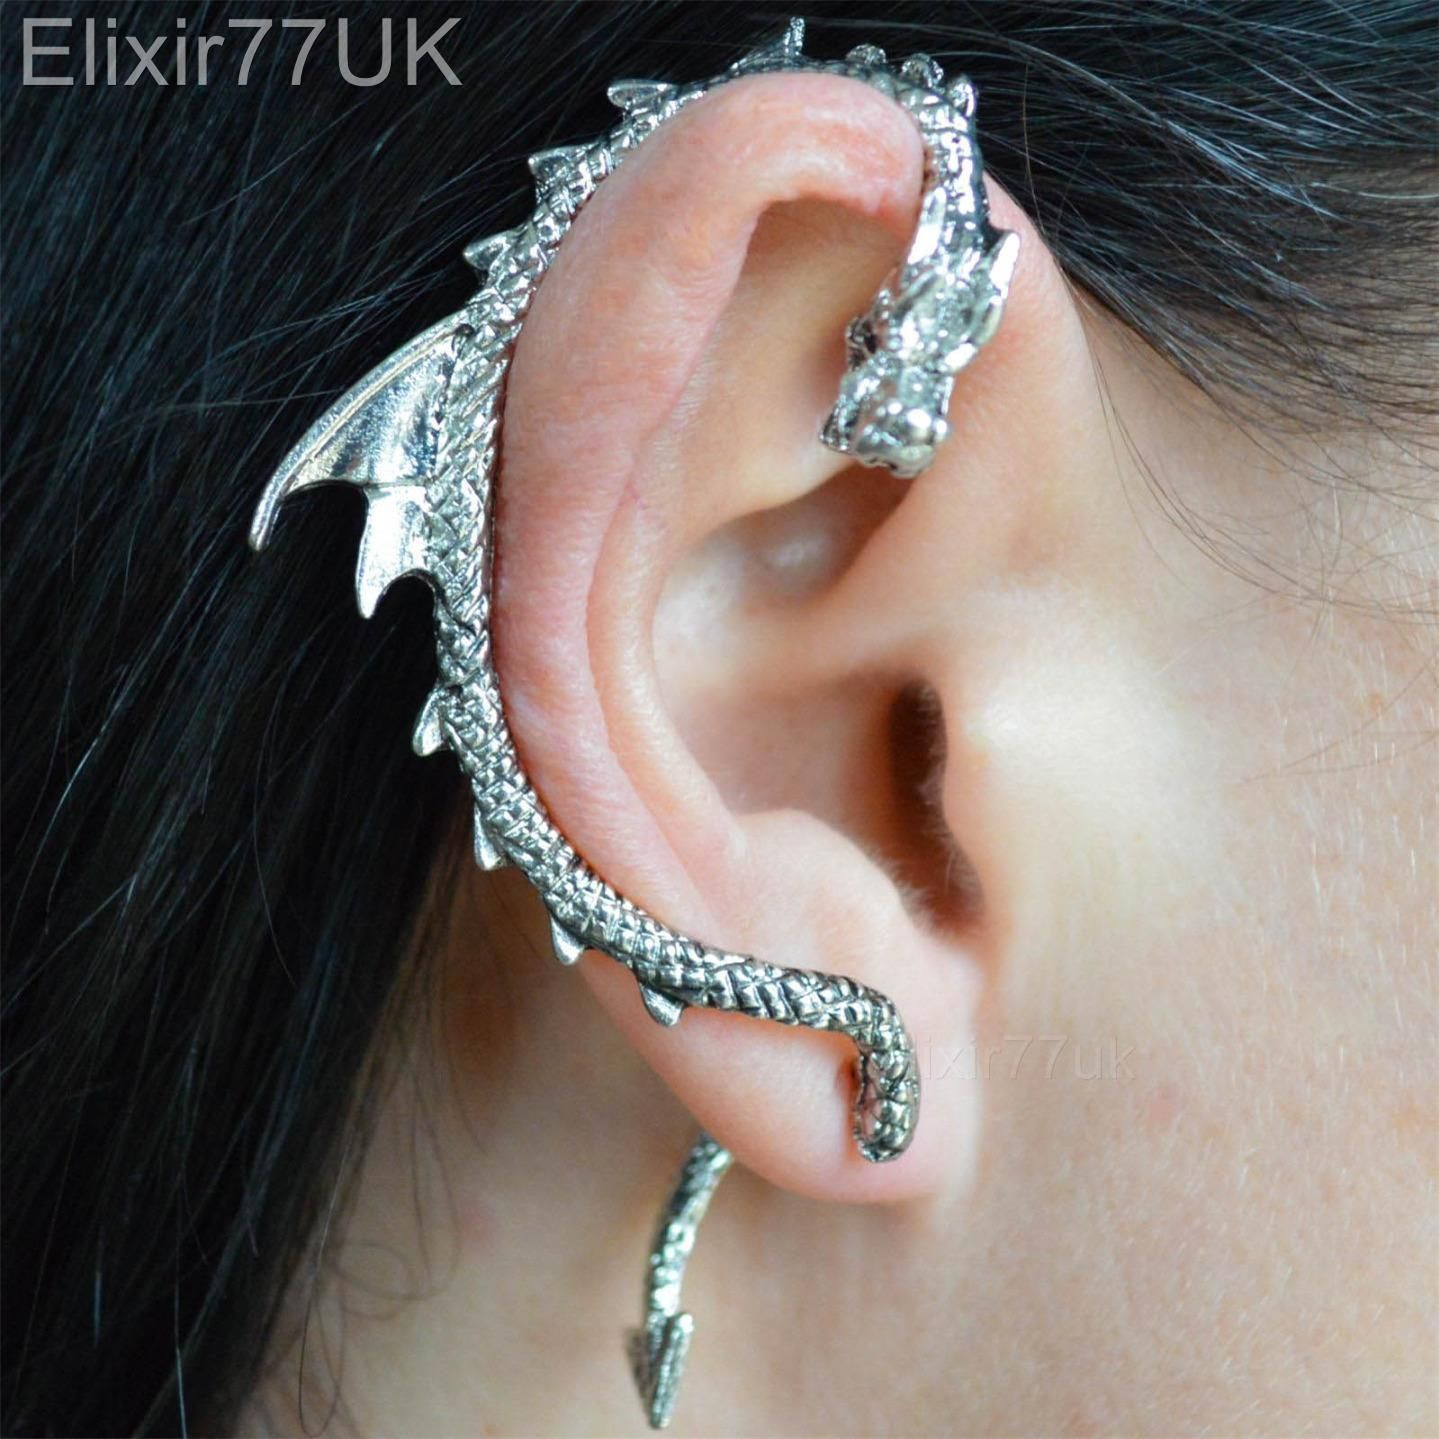 Details About New Silver Dragon Snake Ear Cuff Clip Wrap